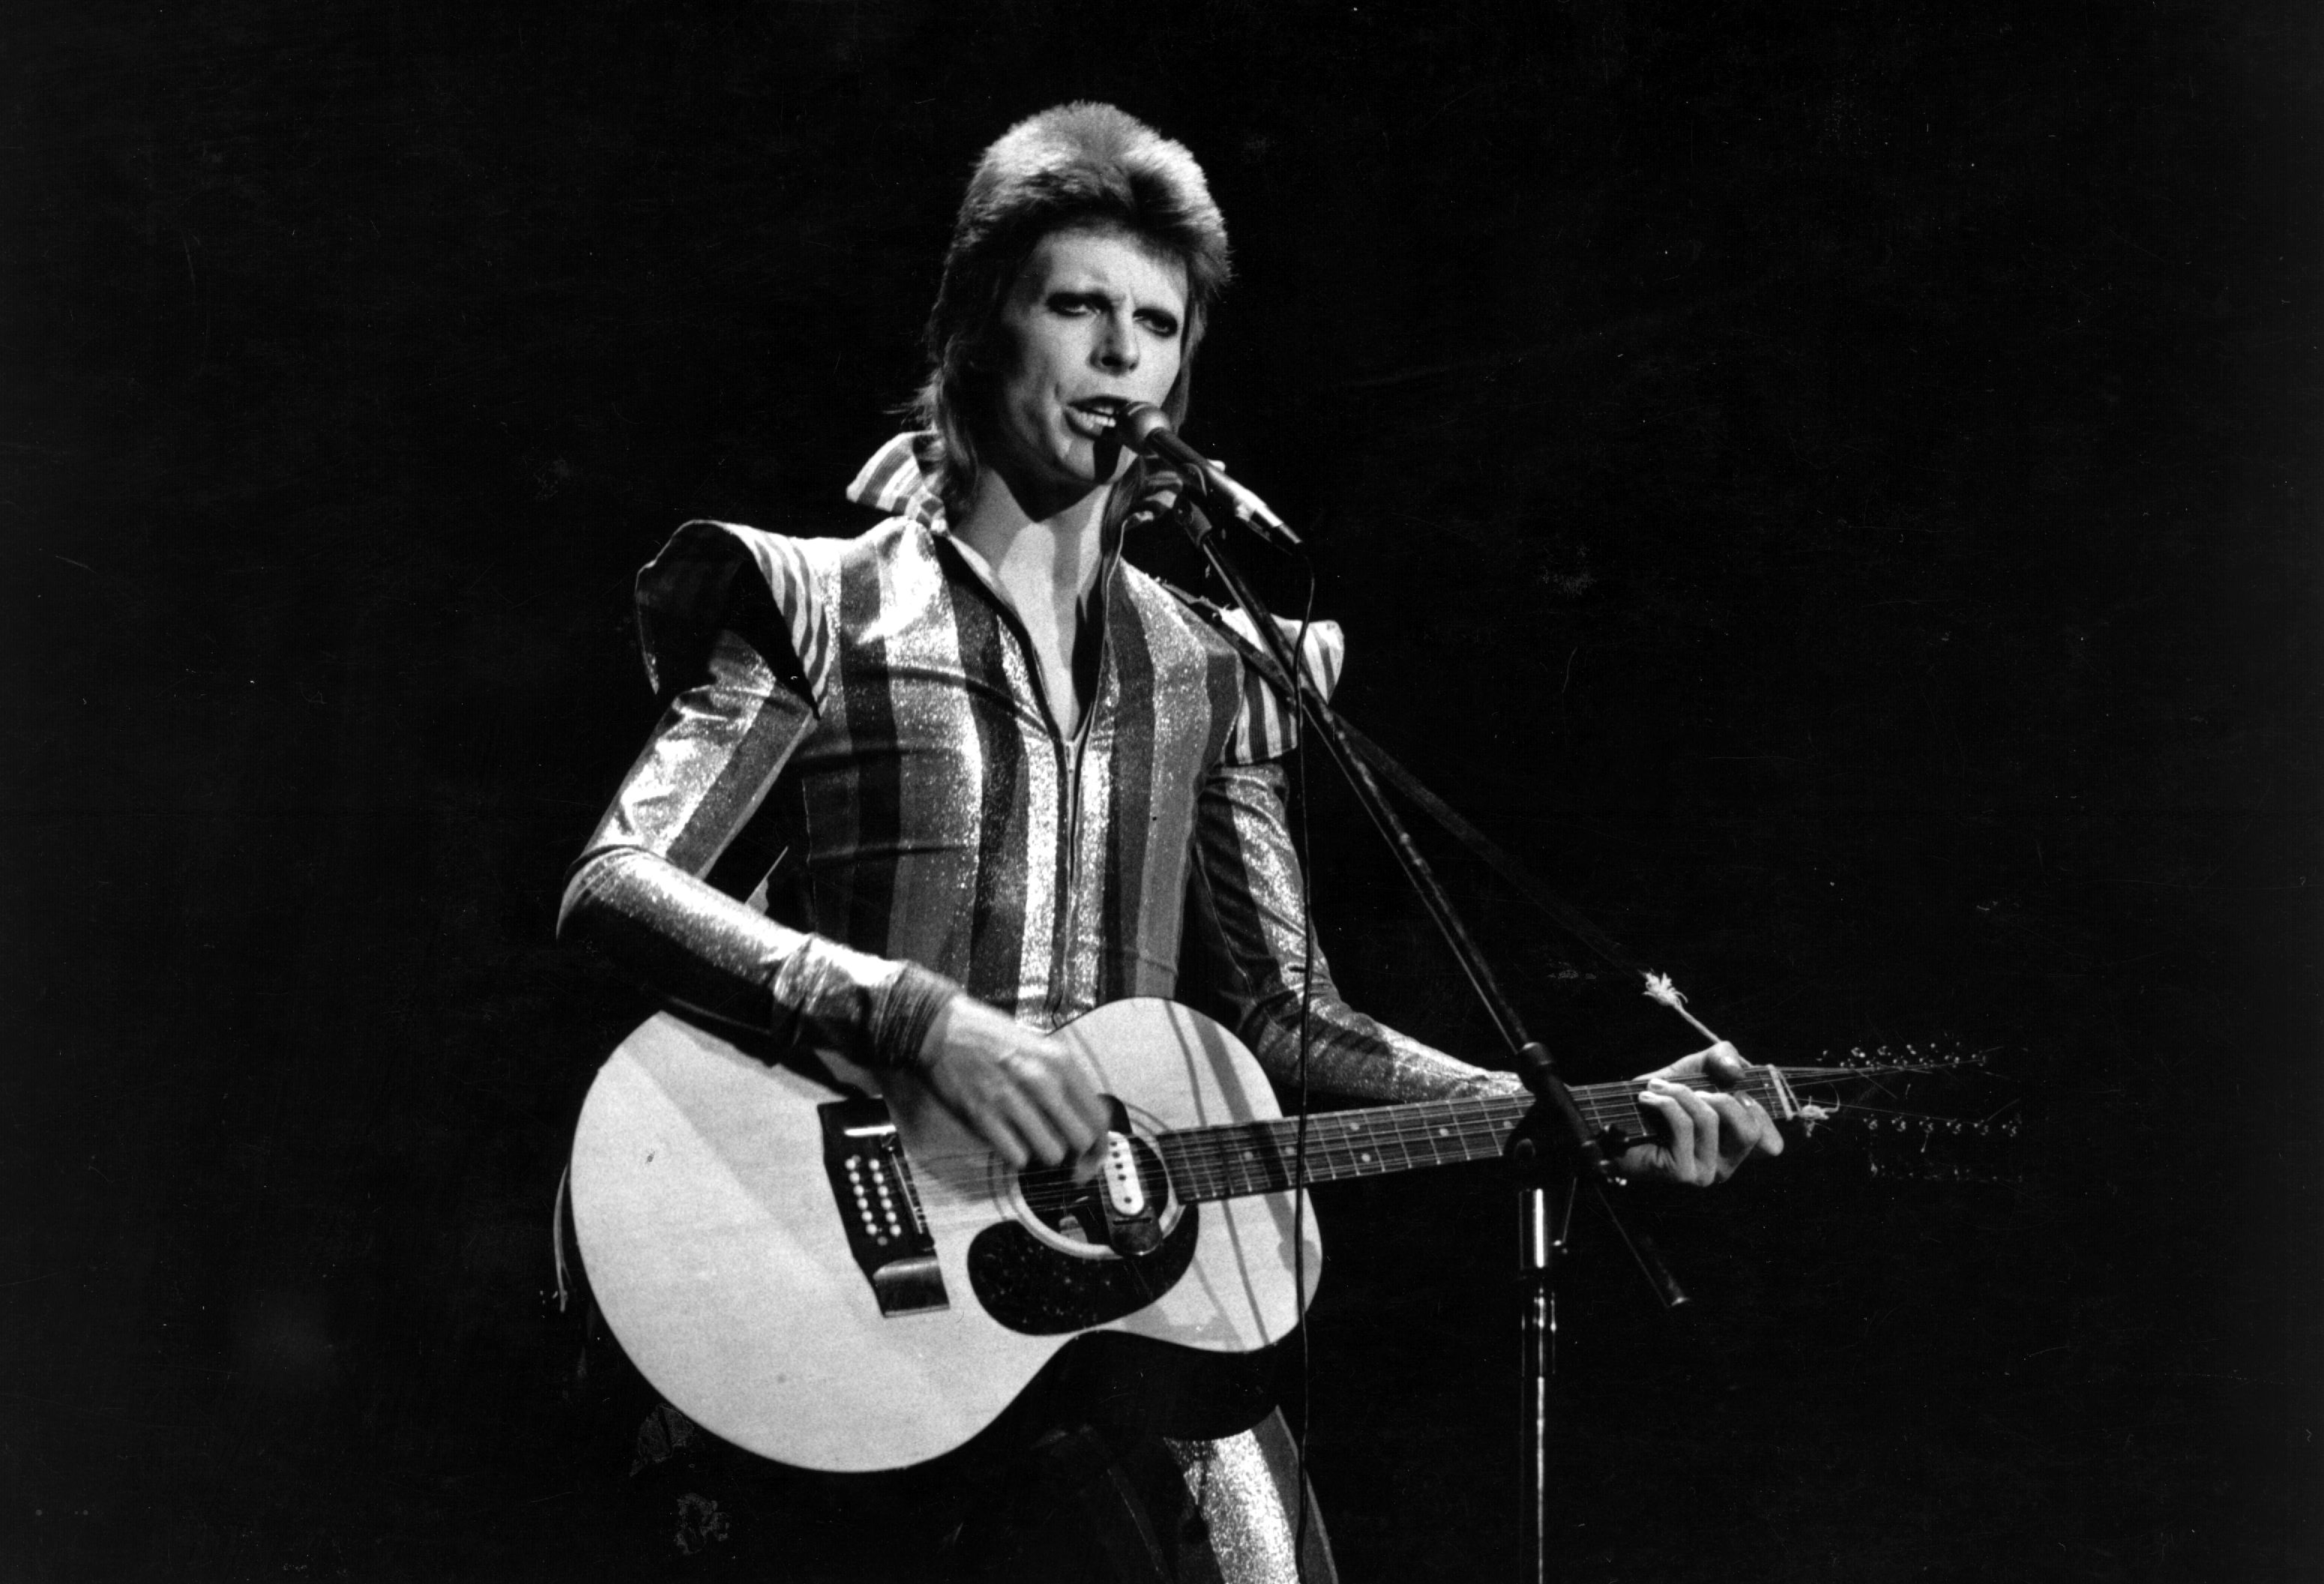 David Bowie performs his final concert as Ziggy Stardust at the Hammersmith Odeon, London on 3 July 1973.